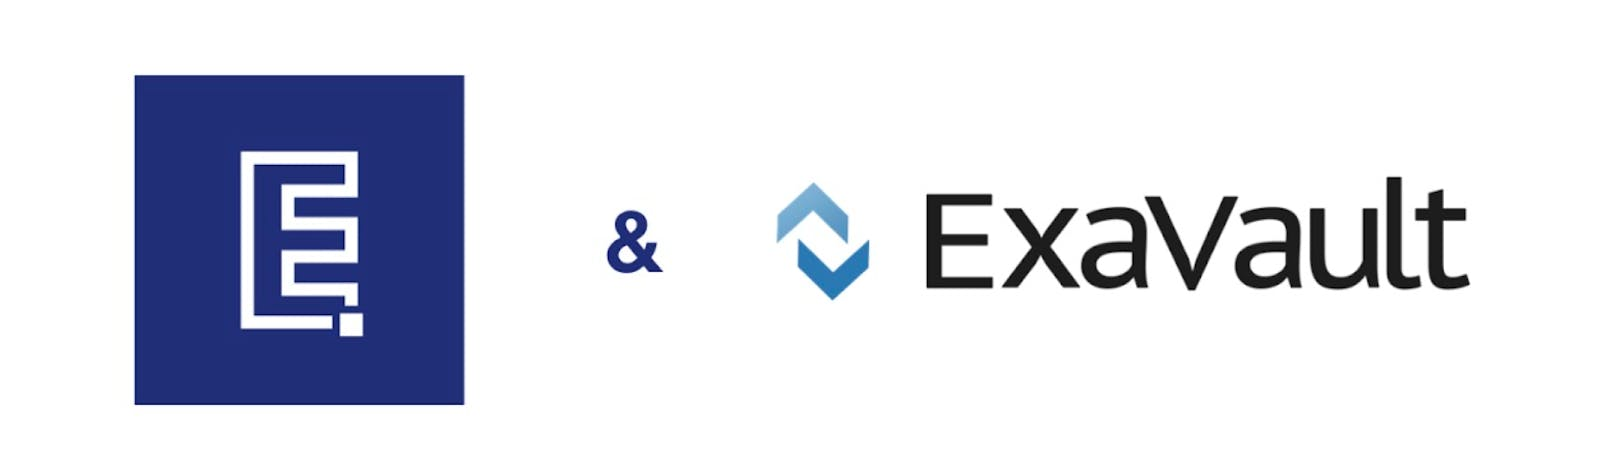 Excelify and ExaVault logos.